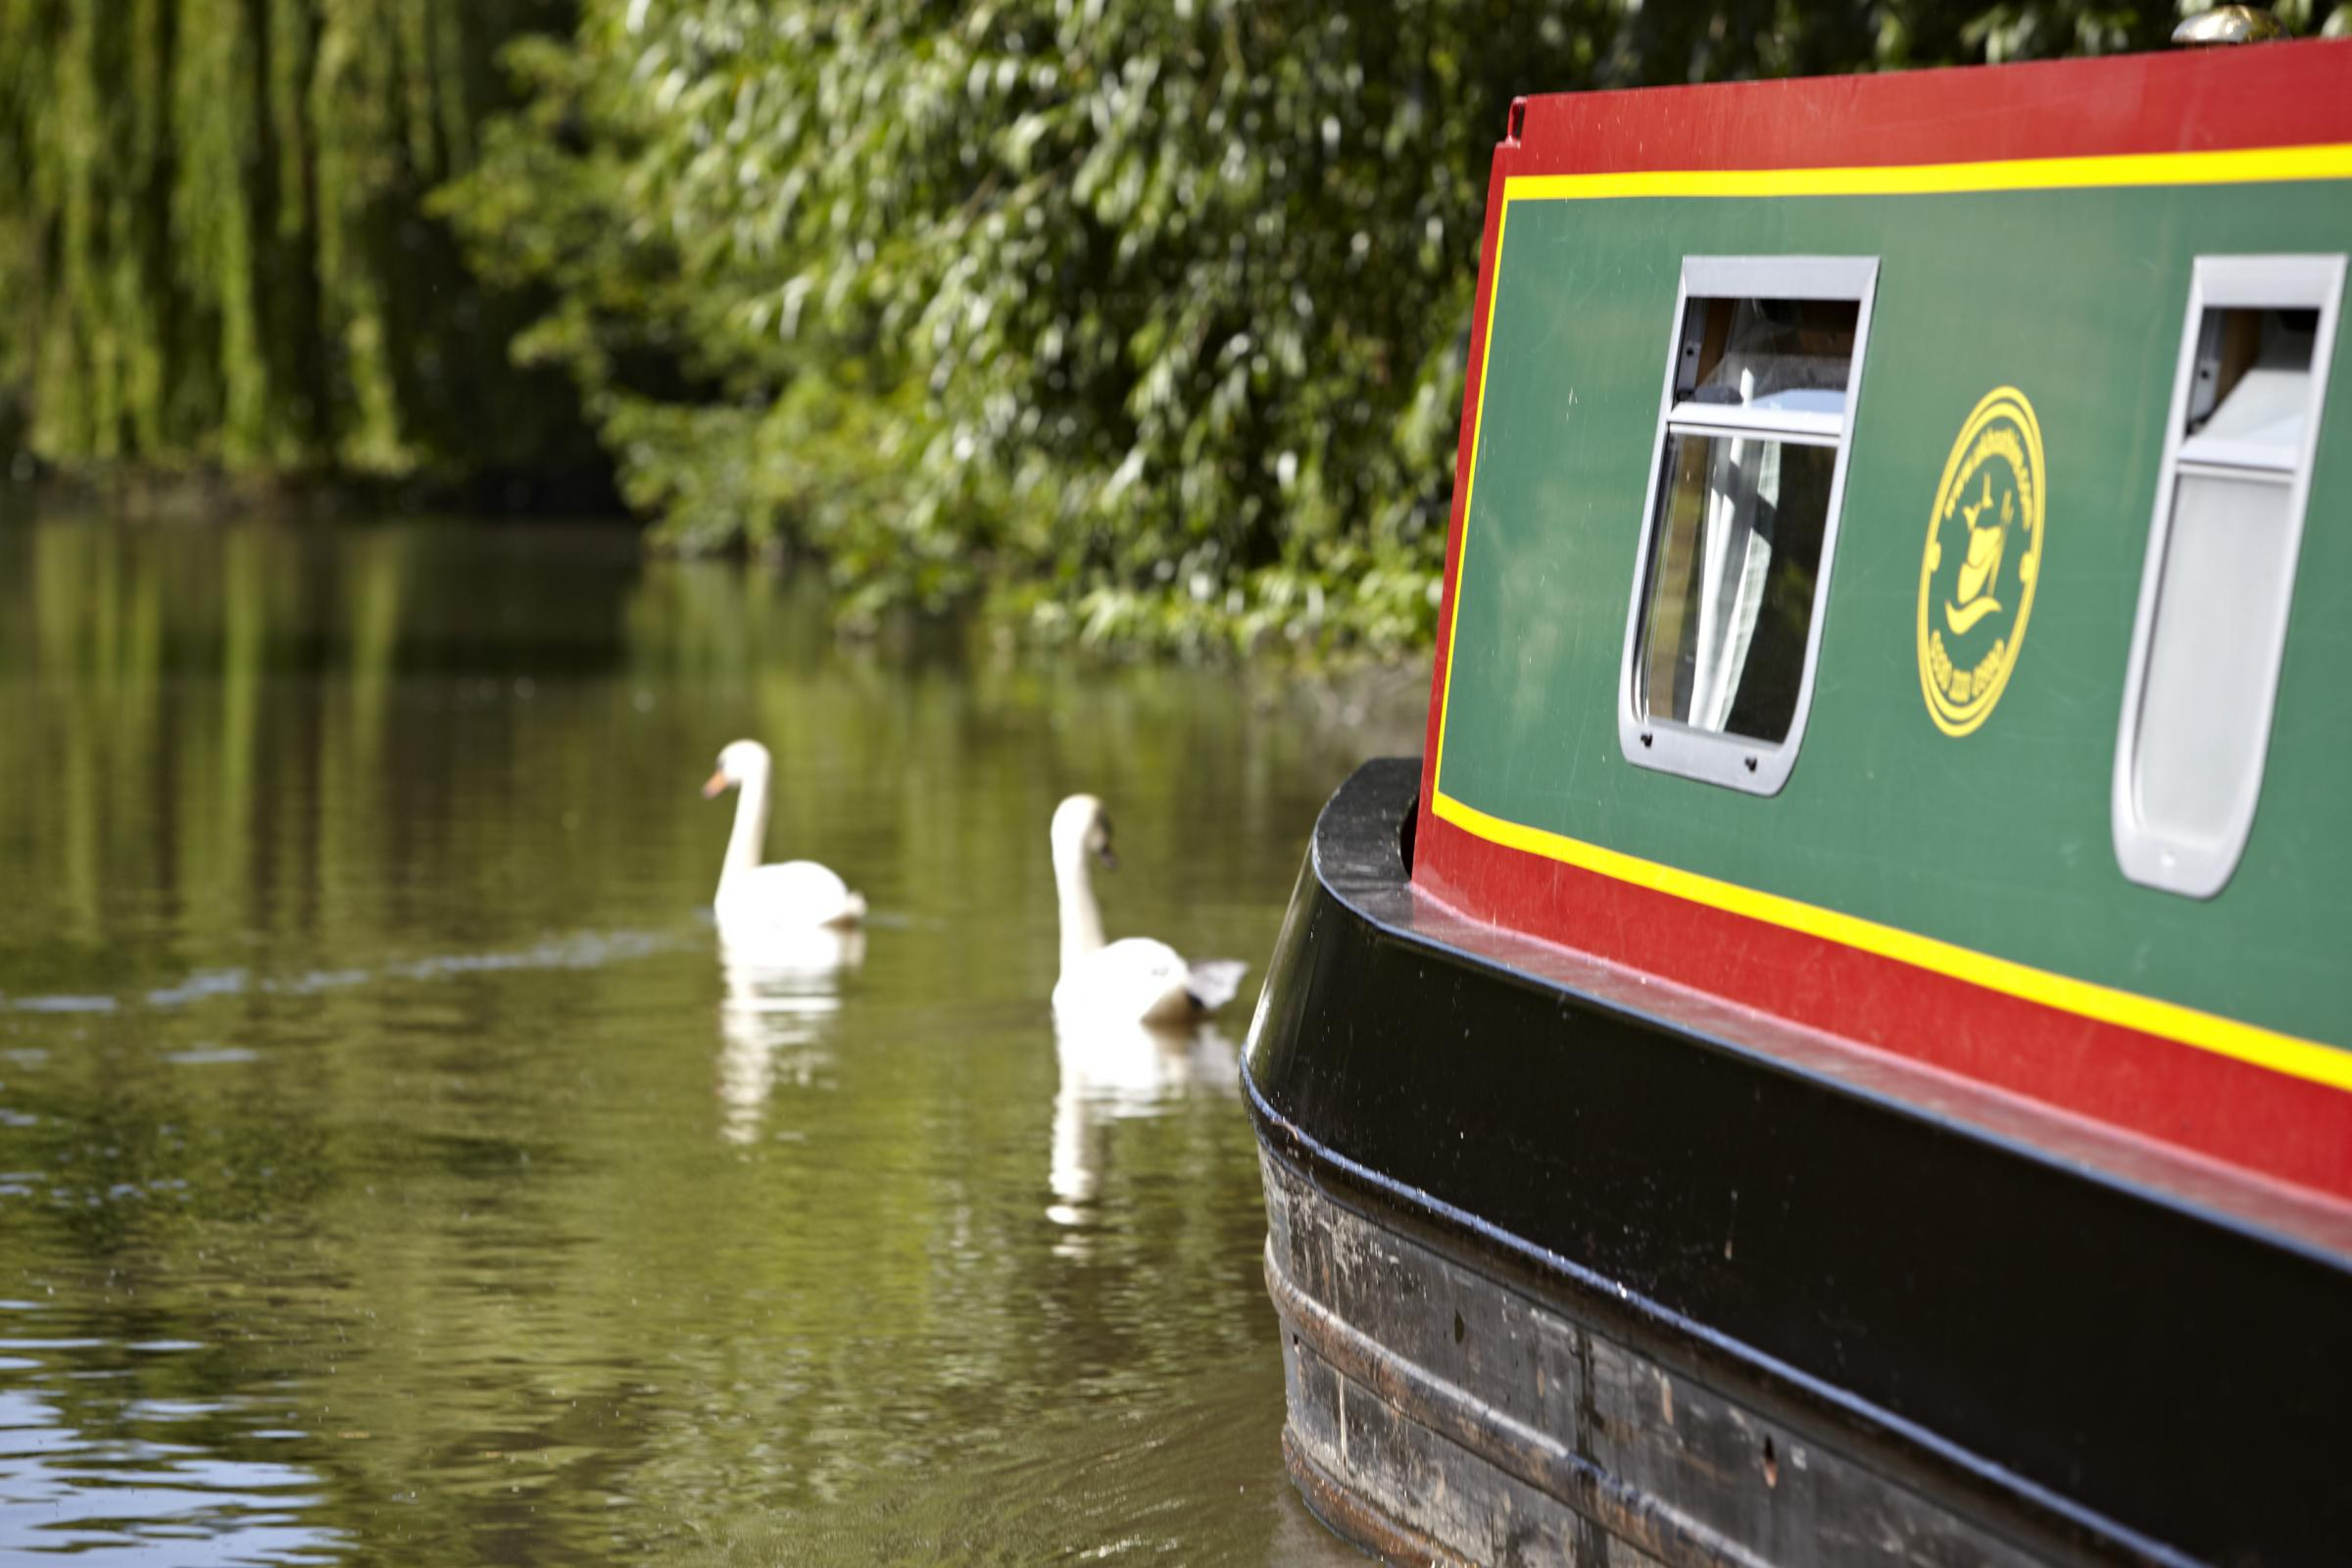 The canal group need photographers to help document the canal's wildlife